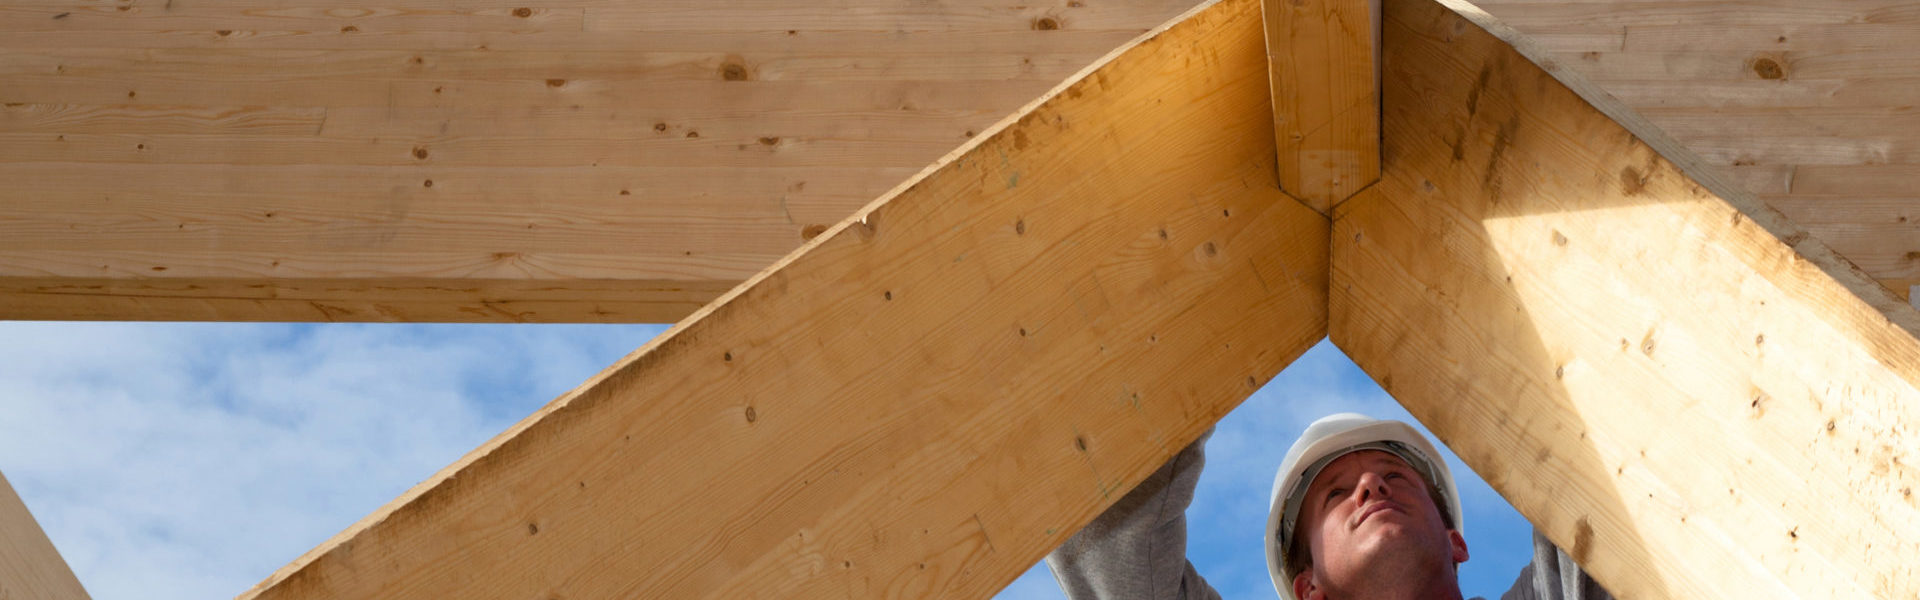 Framing Contractor Insurance | from Bankers Insurance